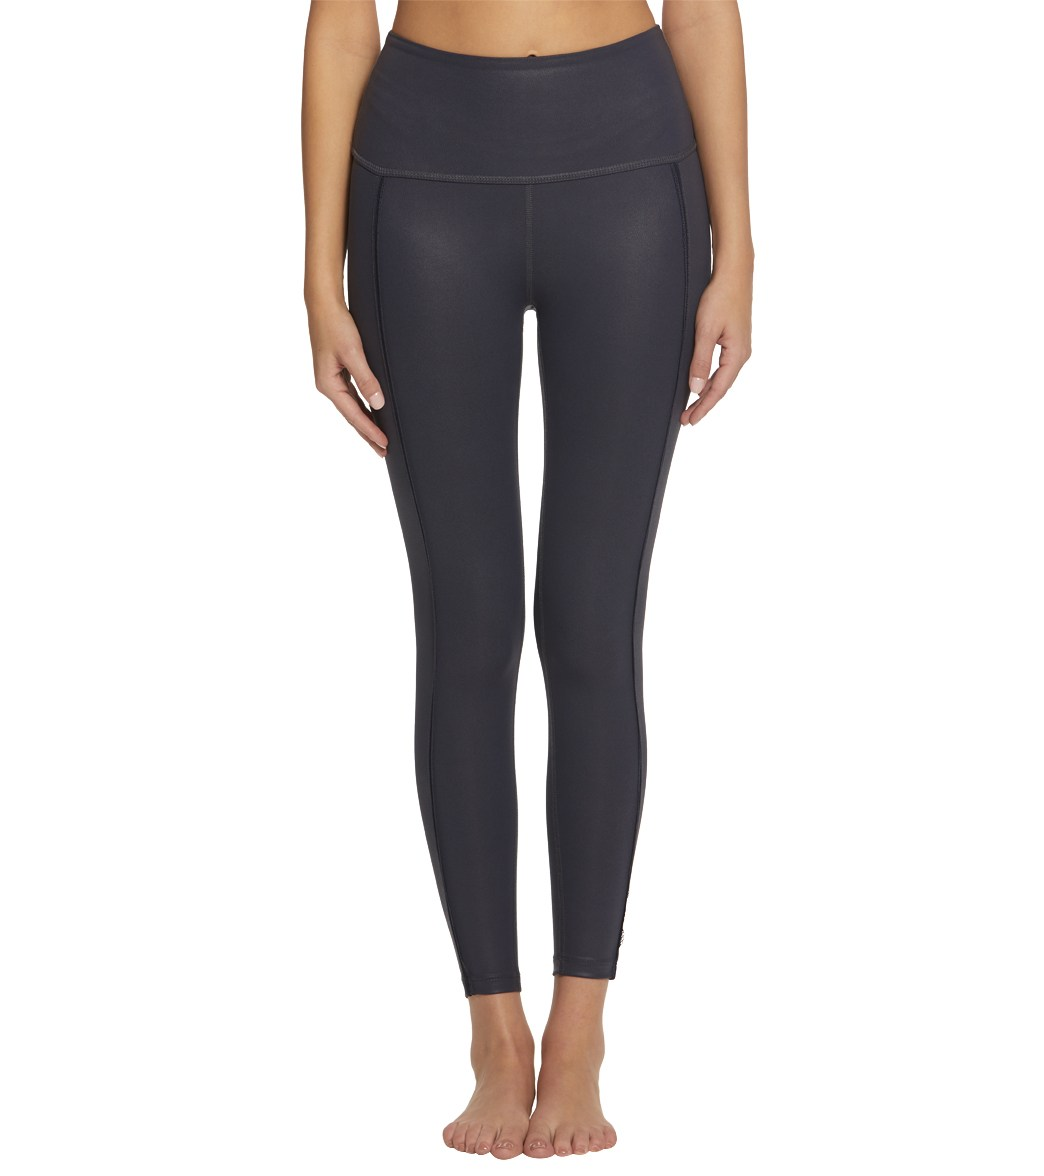 5db359af28 Beyond Yoga Pearlized Rise It High Waisted 7/8 Leggings at YogaOutlet.com - Free  Shipping